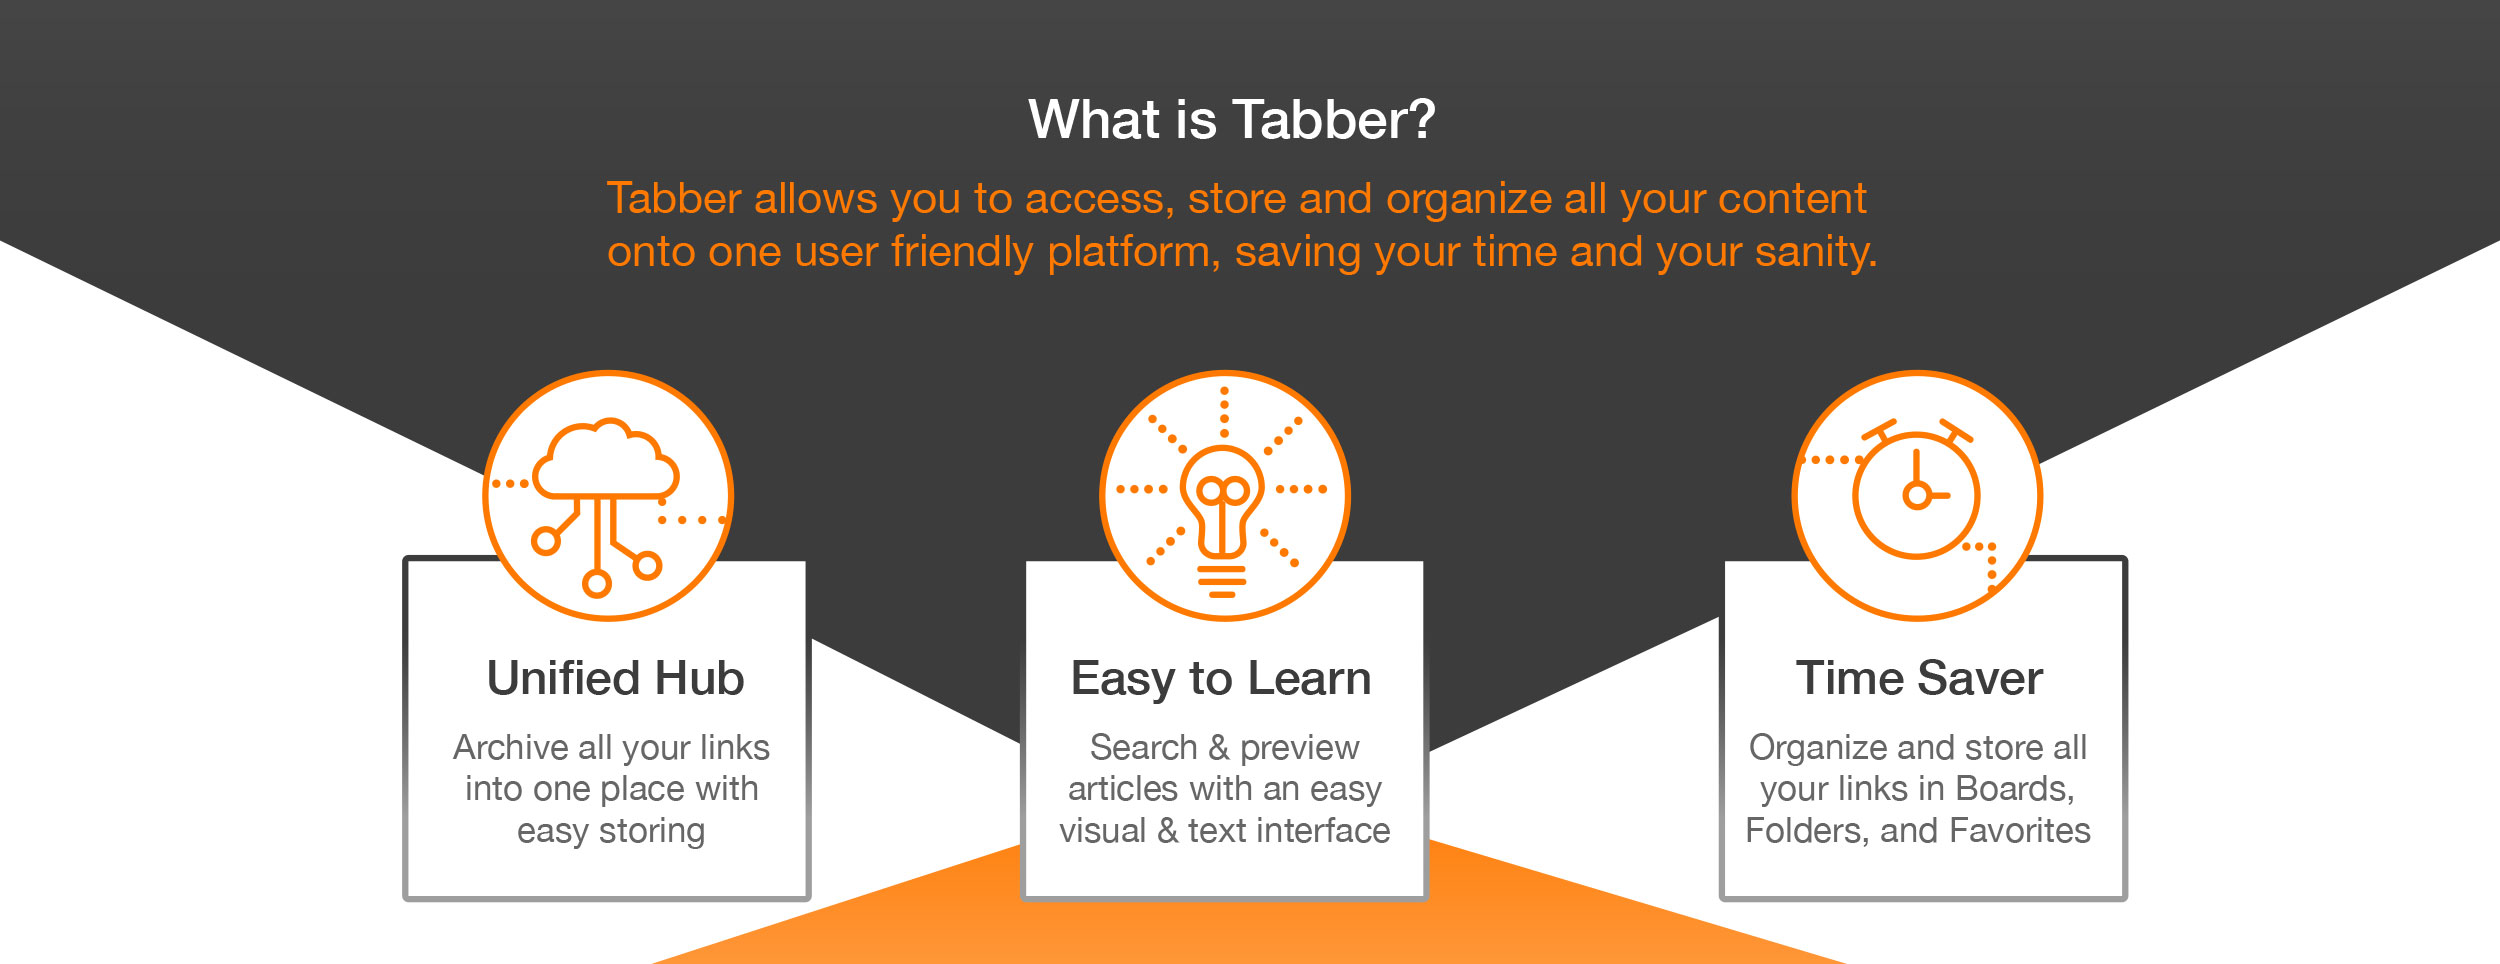 Tabber-Page-Whole_02.jpg